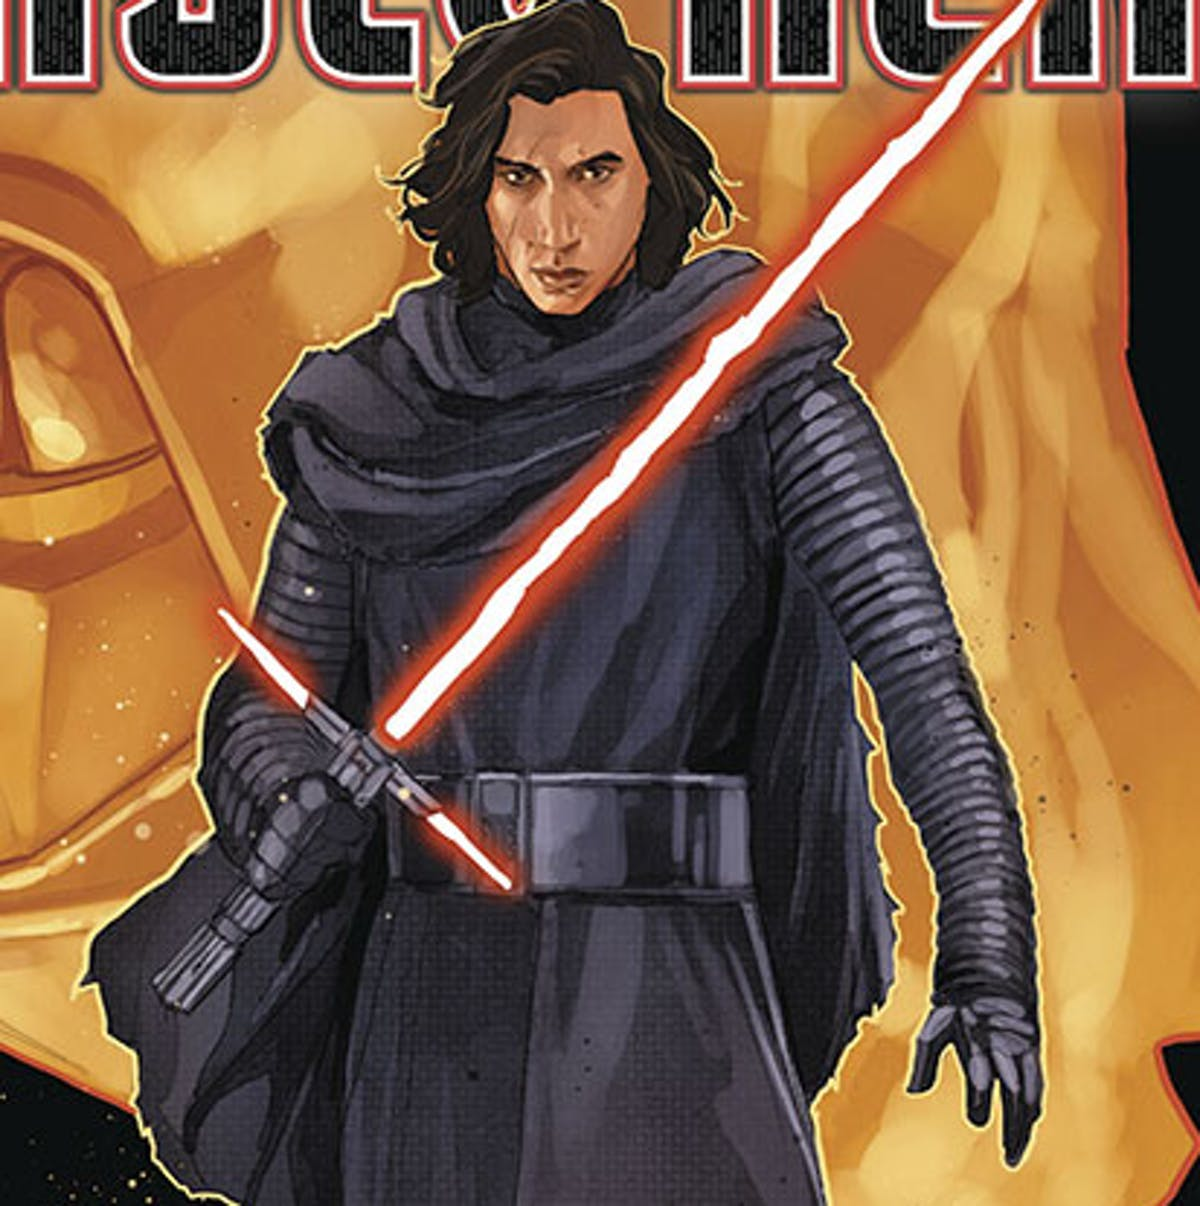 Kylo Ren completes a failed Darth Vader mission in new 'Star Wars' comic